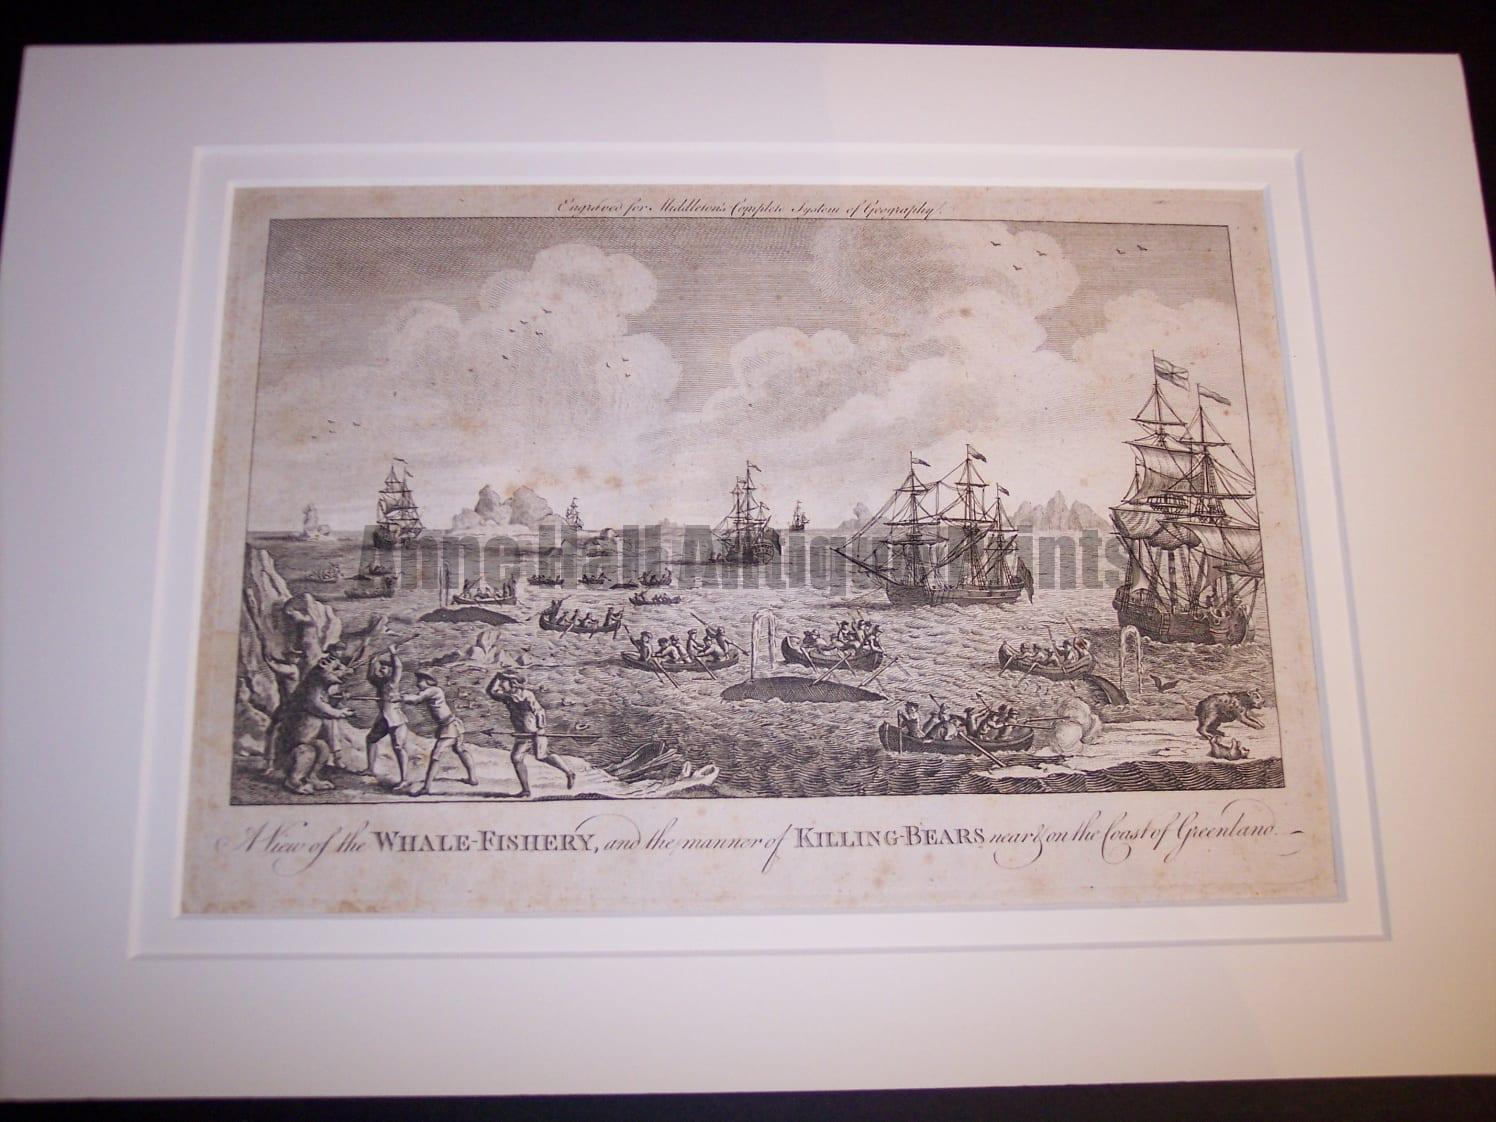 Whale Fishery, Rare Copper Engraving